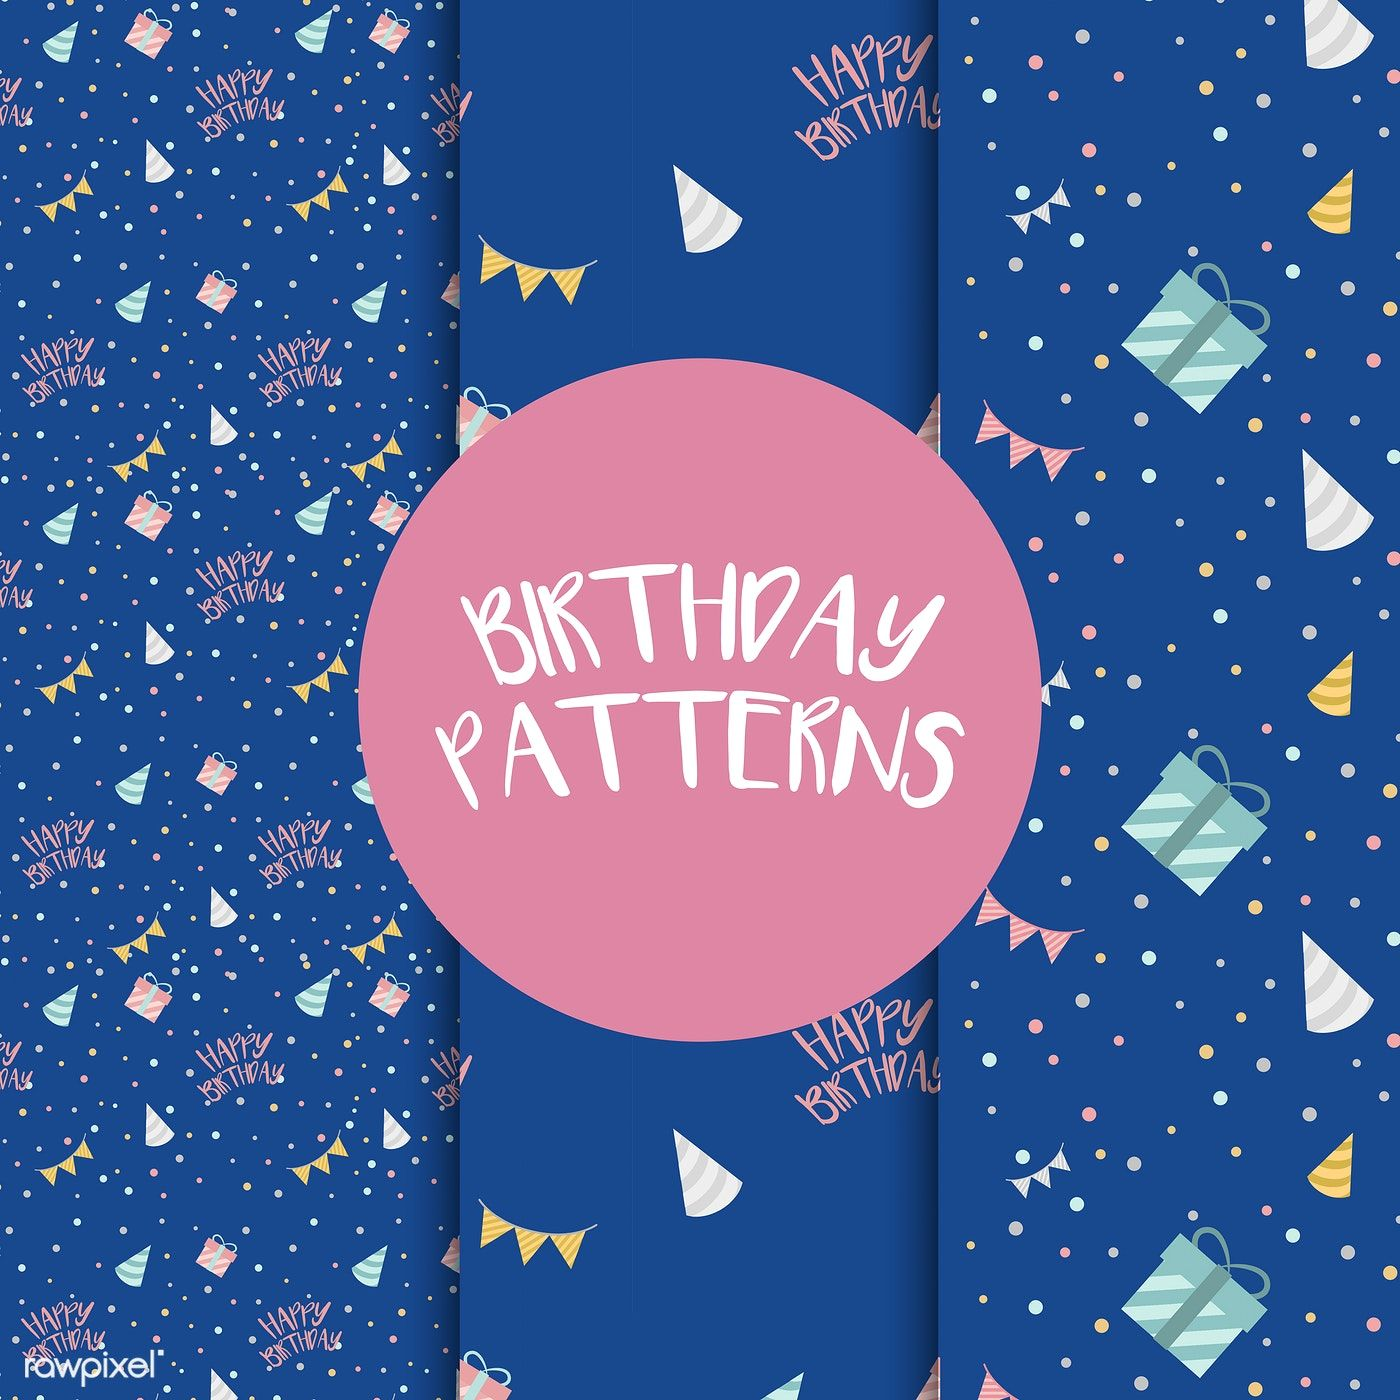 Set Of Birthday Pattern Vectors Free Image By Rawpixel Com With